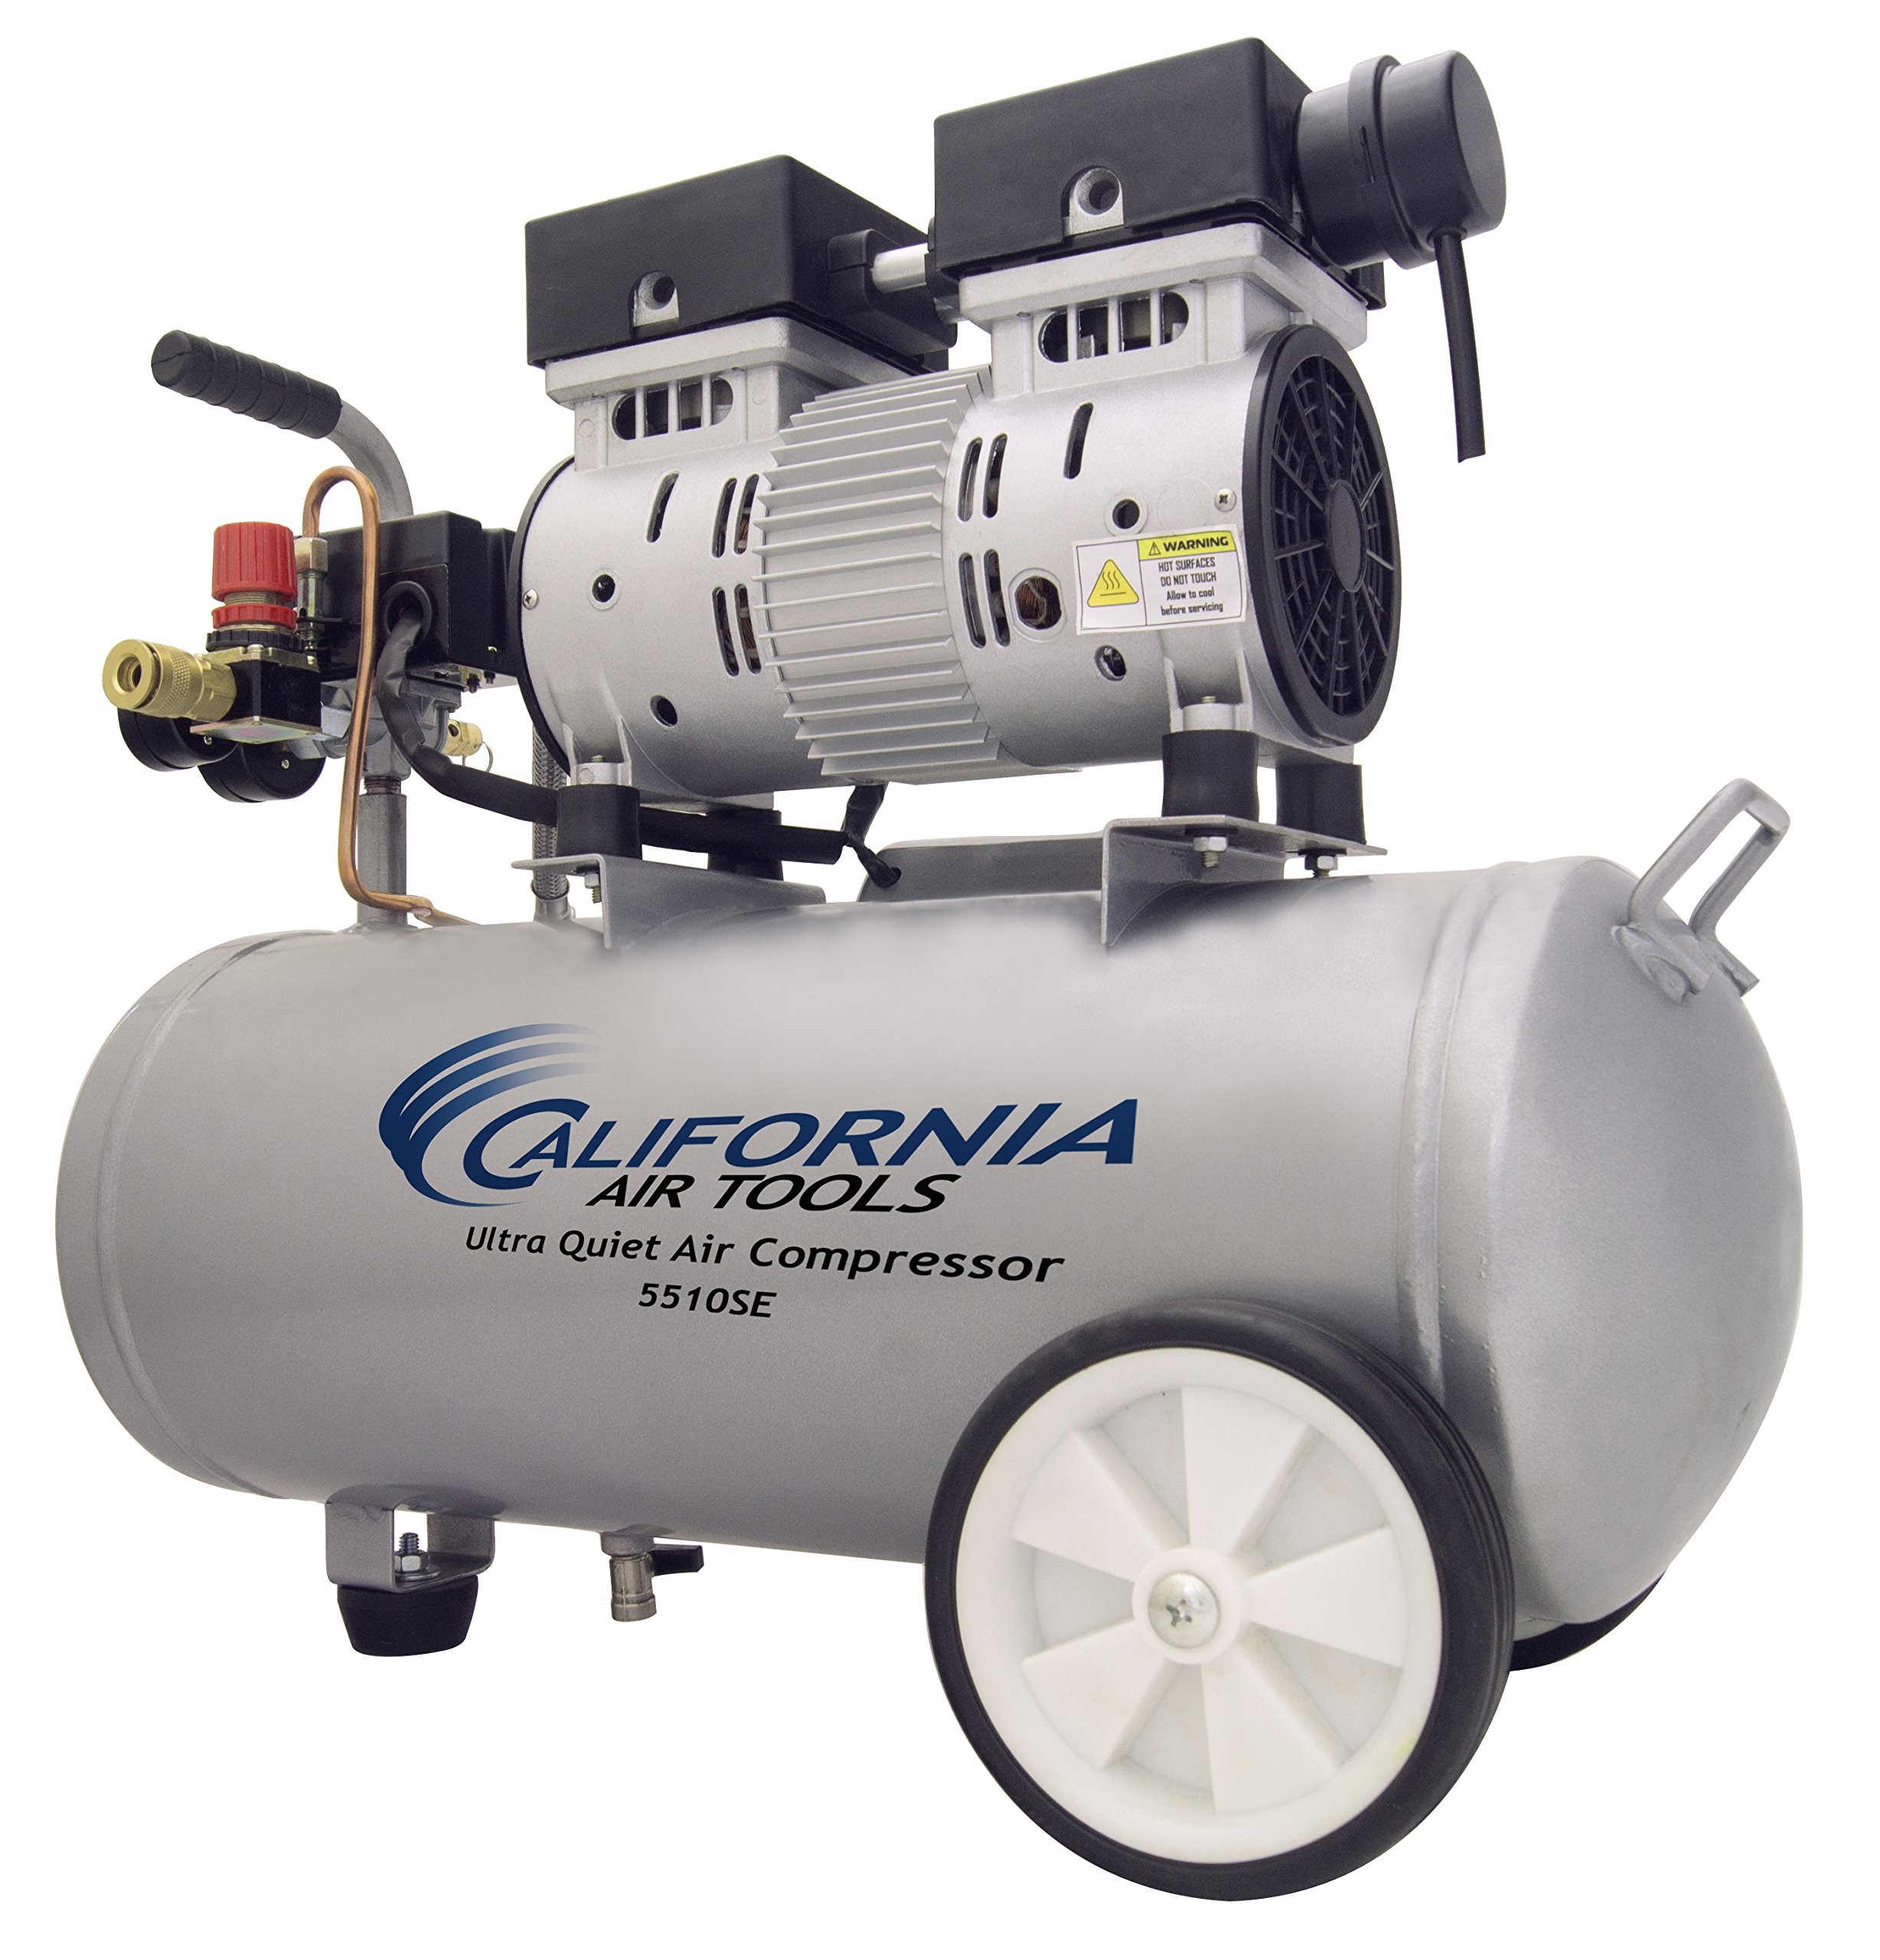 California Air Tools 5510SE Ultra Quiet and Oil-Free 1.0-HP 5.5-Gallon Steel Tank Air Compressor by California Air Tools (Image #5)